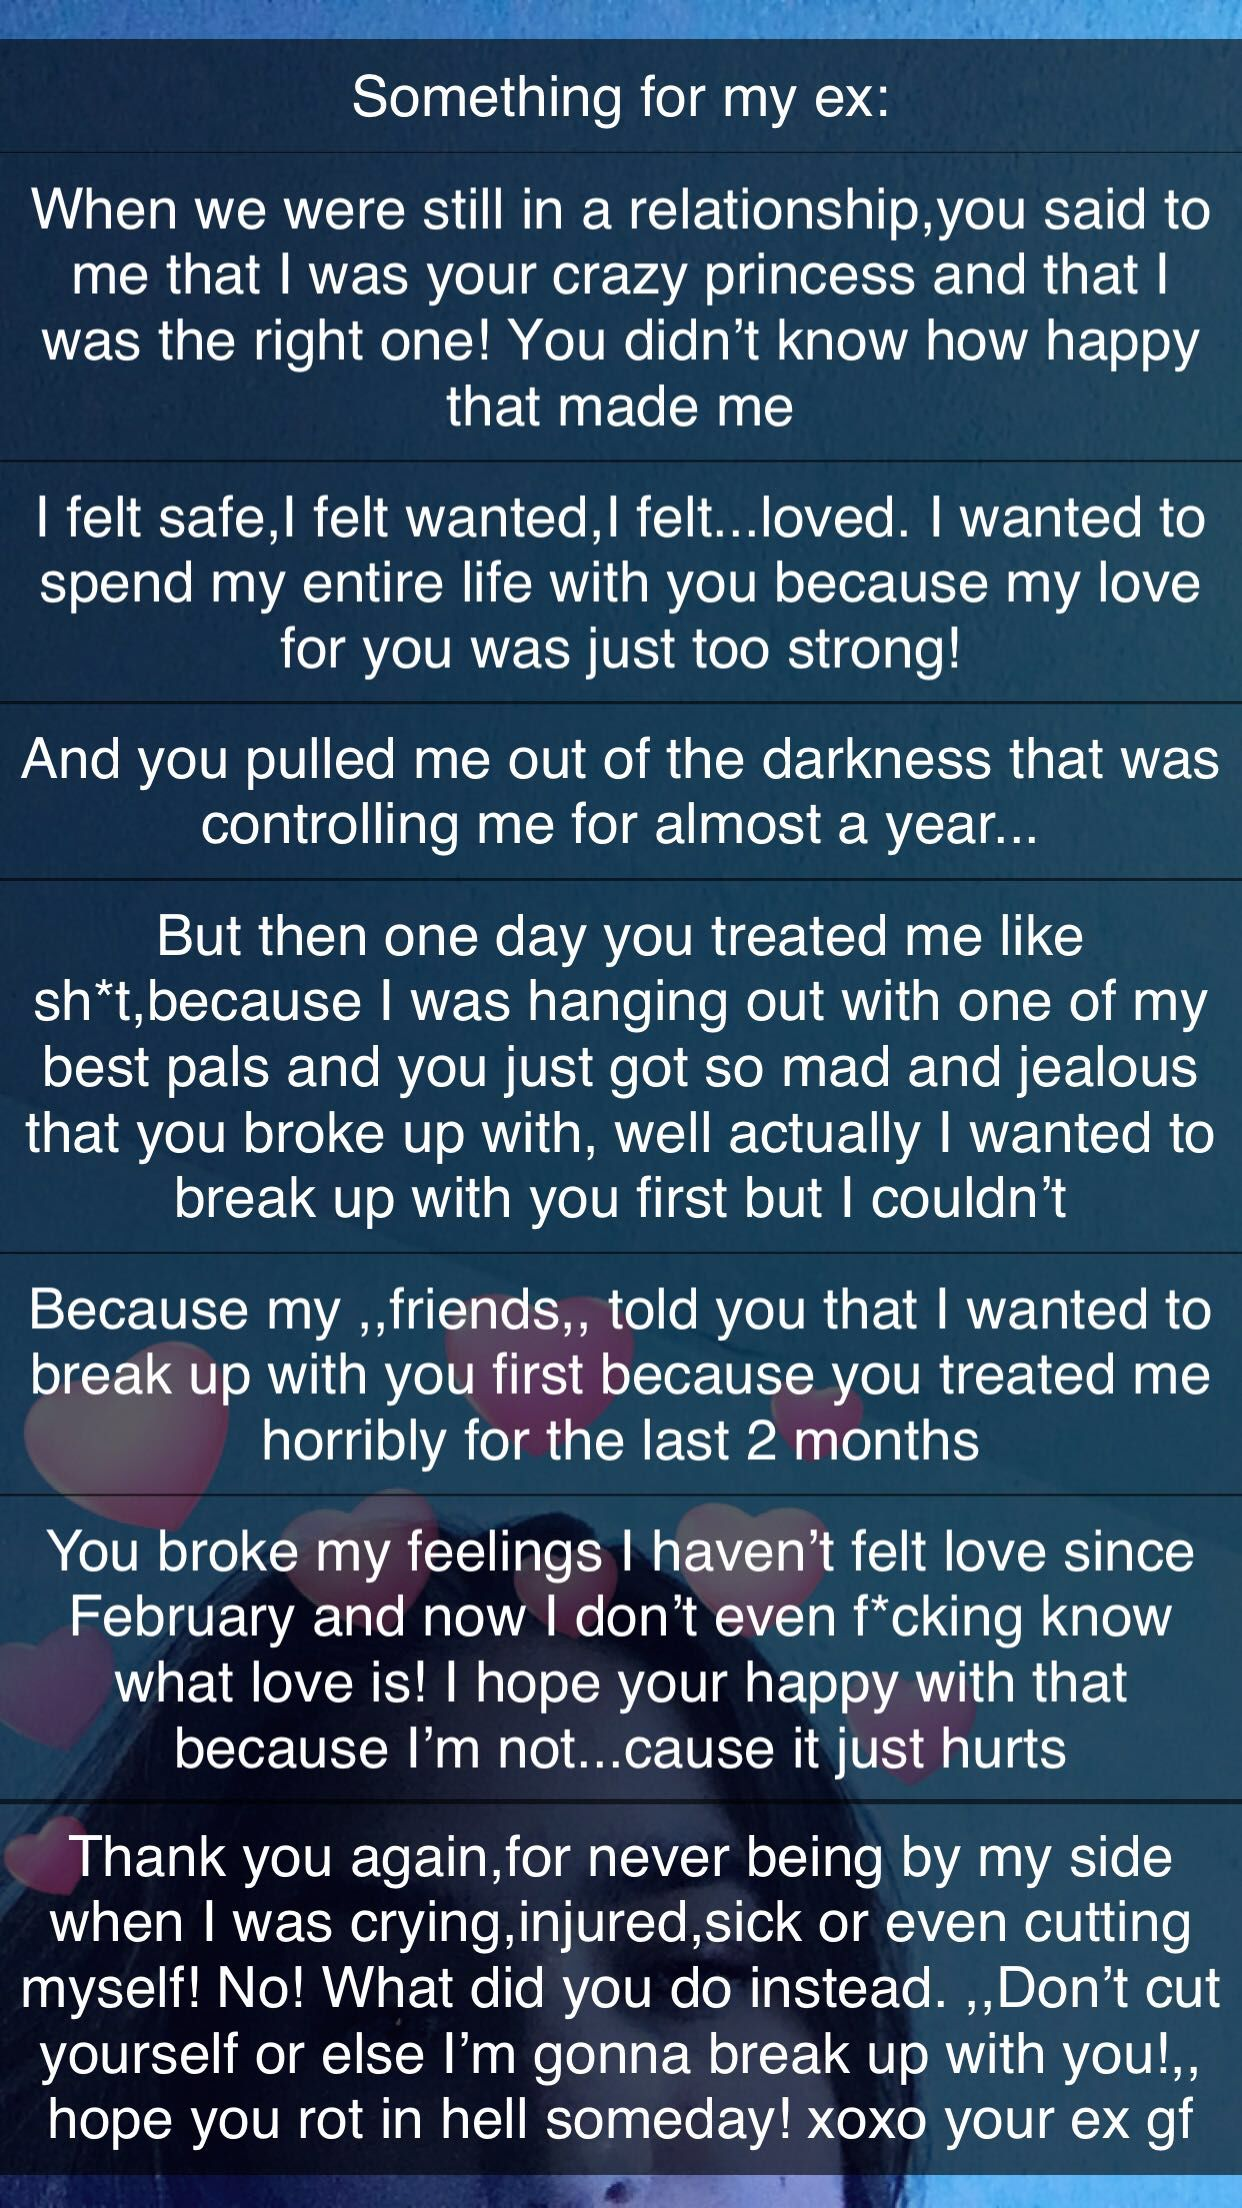 This Was My Relationship With My Ex Bf I Loved Him And In Return He Treated Me Like I M Nothing I Love Him Love Him Relationship